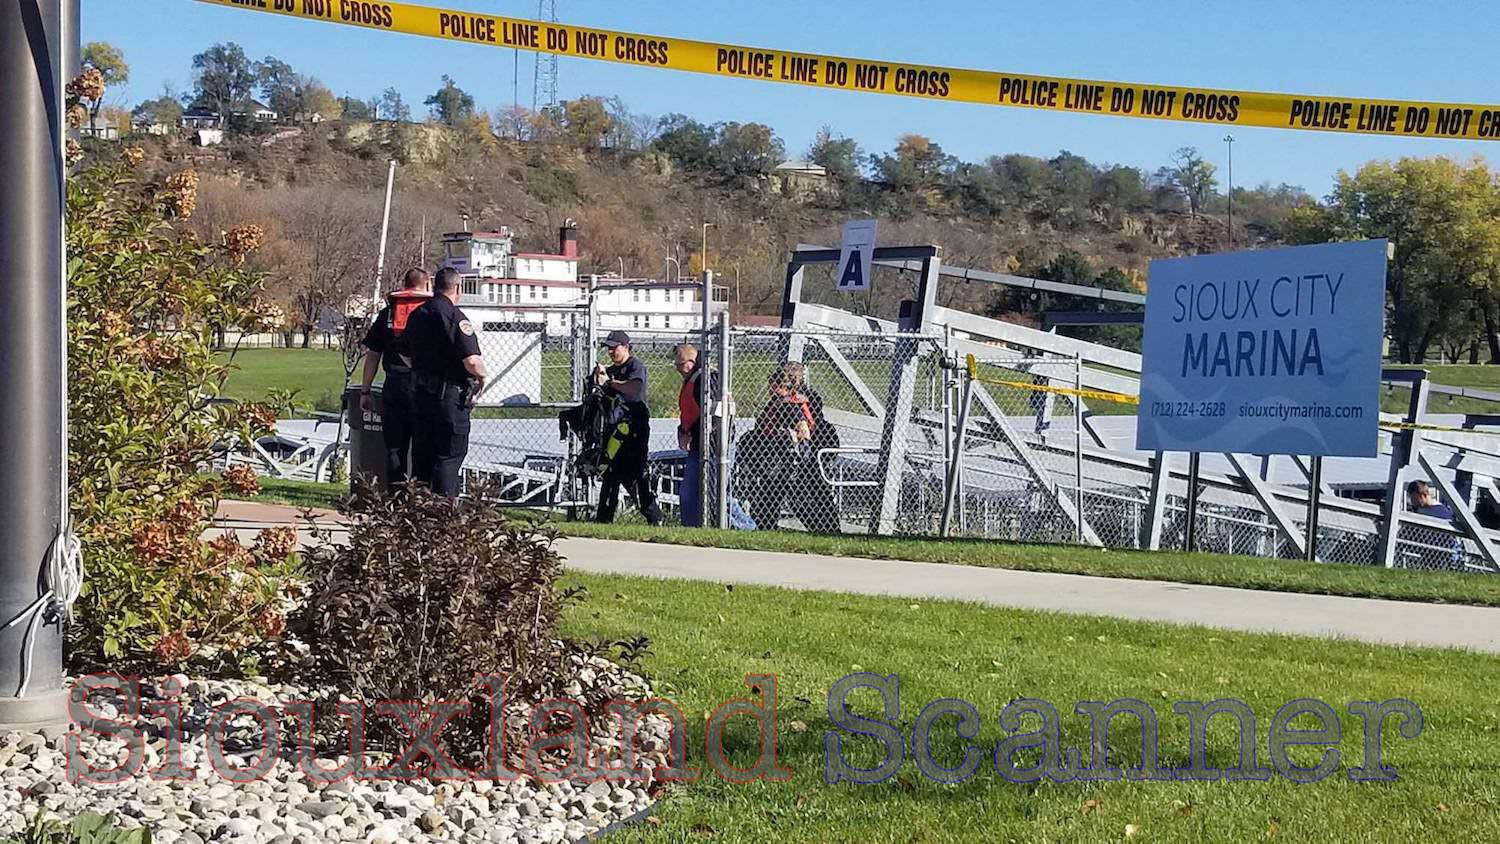 Rescuers respond to Sioux City Marina after witness says man didnt resurface